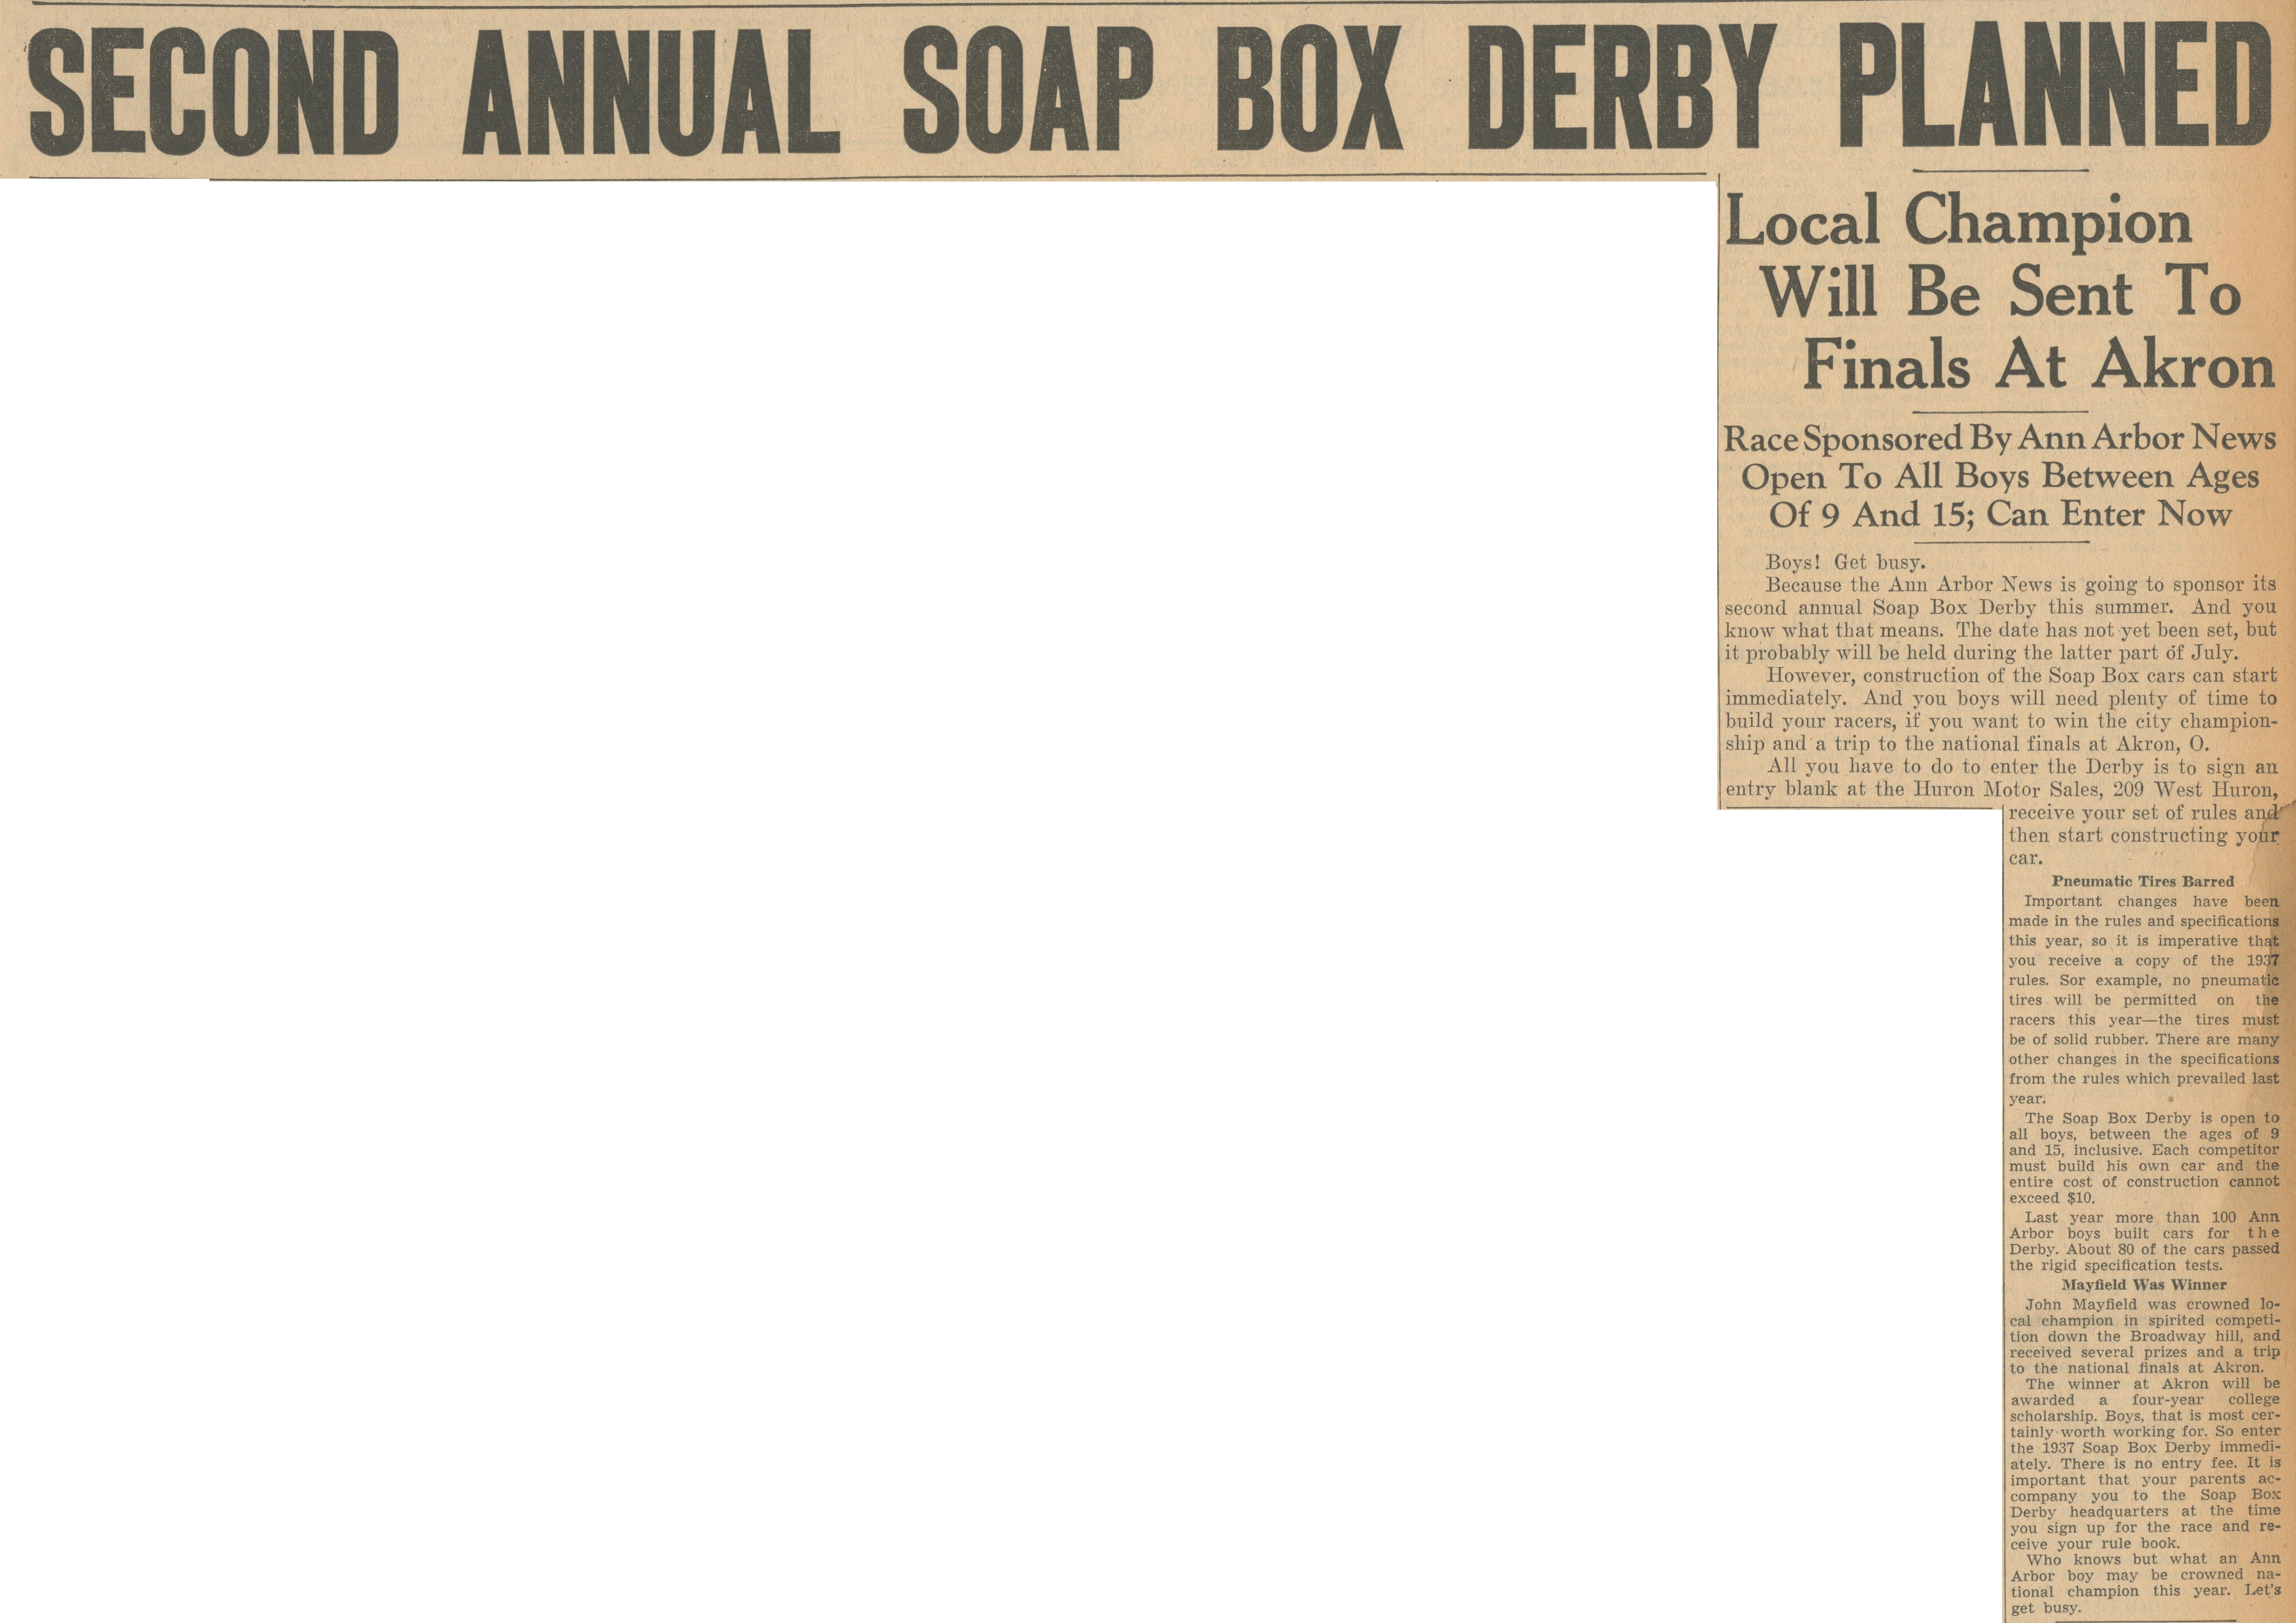 Second Annual Soap Box Derby Planned - Local Champion Will Be Sent To Finals At Akron - Race Sponsored By Ann Arbor News Open To All Boys Between Ages of 9 and 15; Can Enter Now image